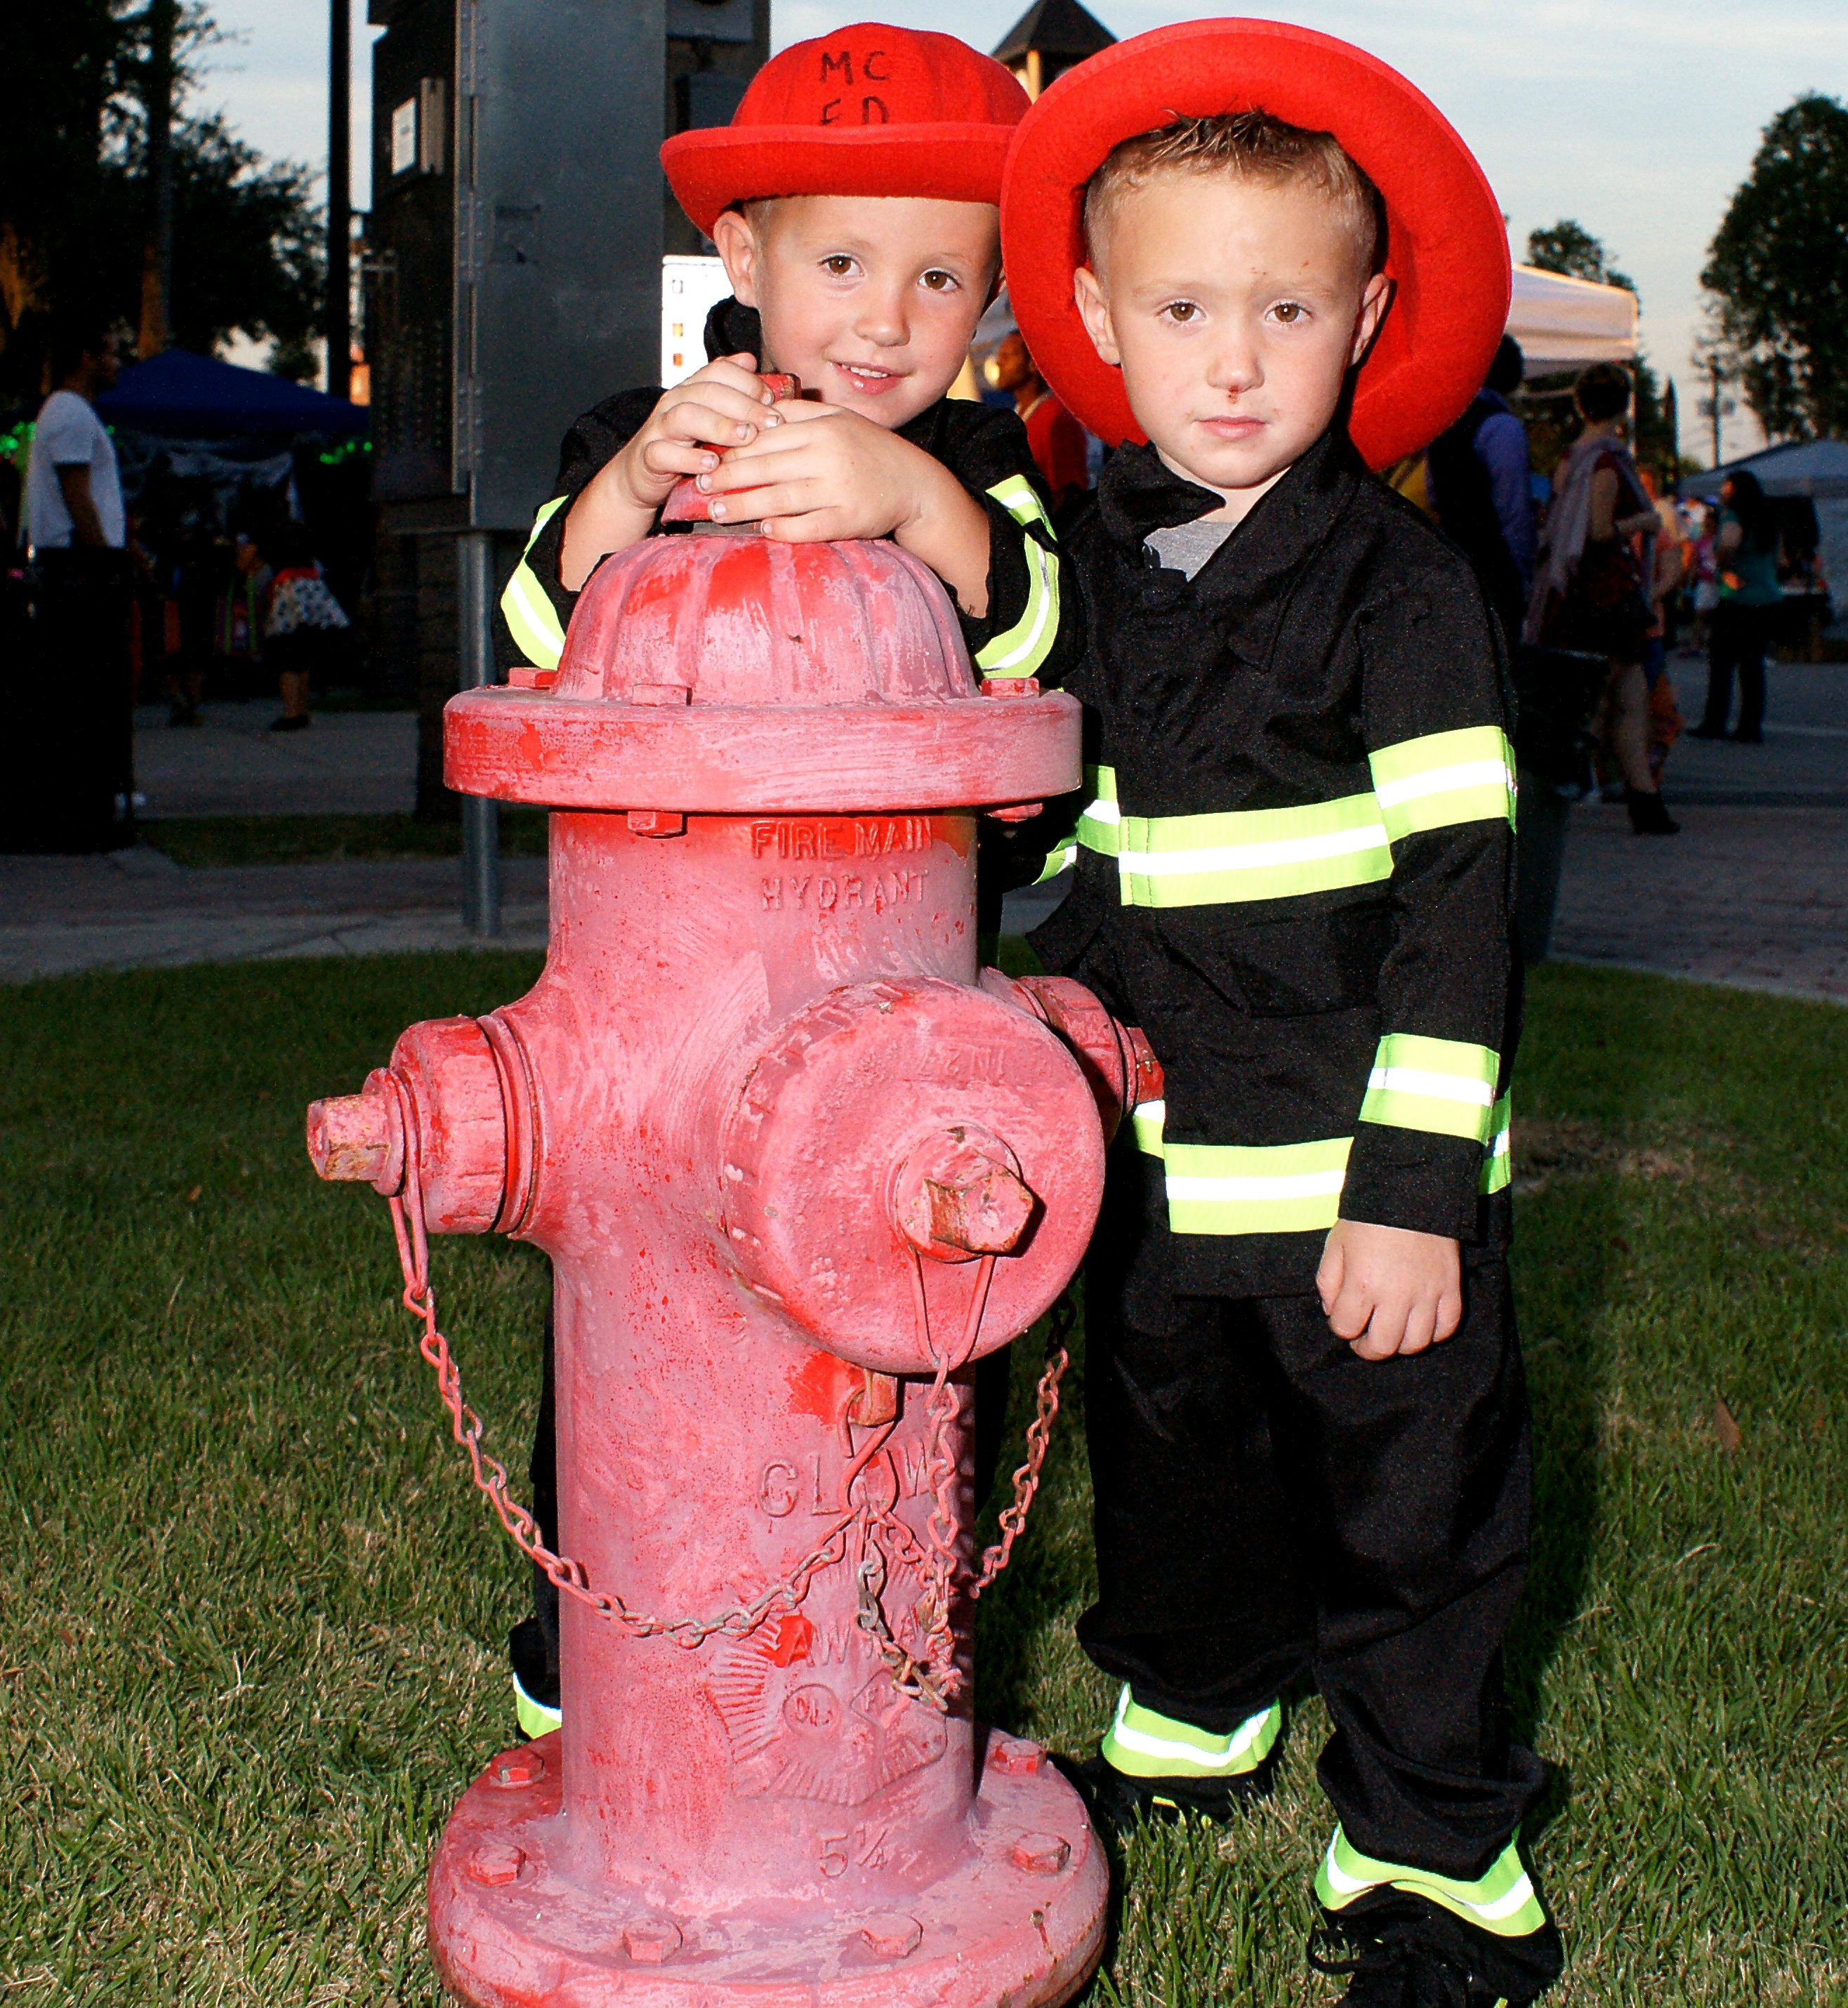 thrill the worl 2015. ocala news, ocala post, op, marion county news